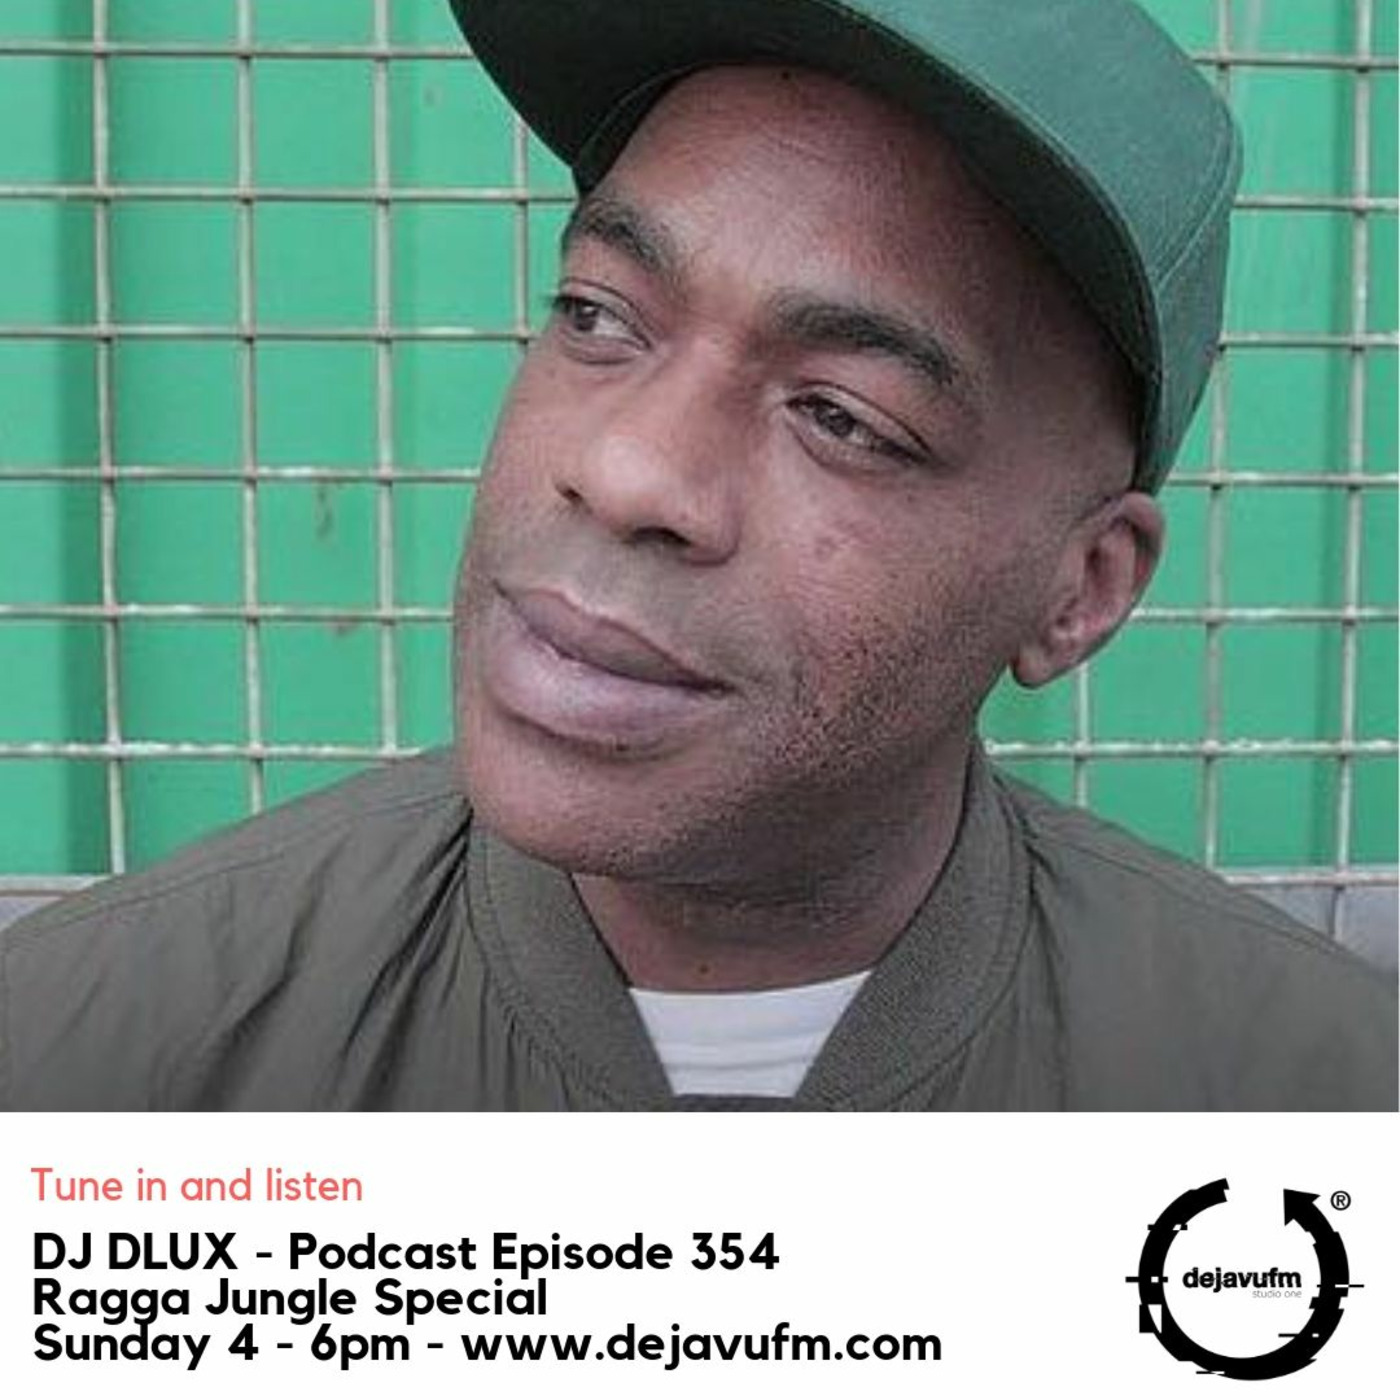 DJ Dlux - Podcast Episode 354 - Ragga Jungle Special DJ Dlux